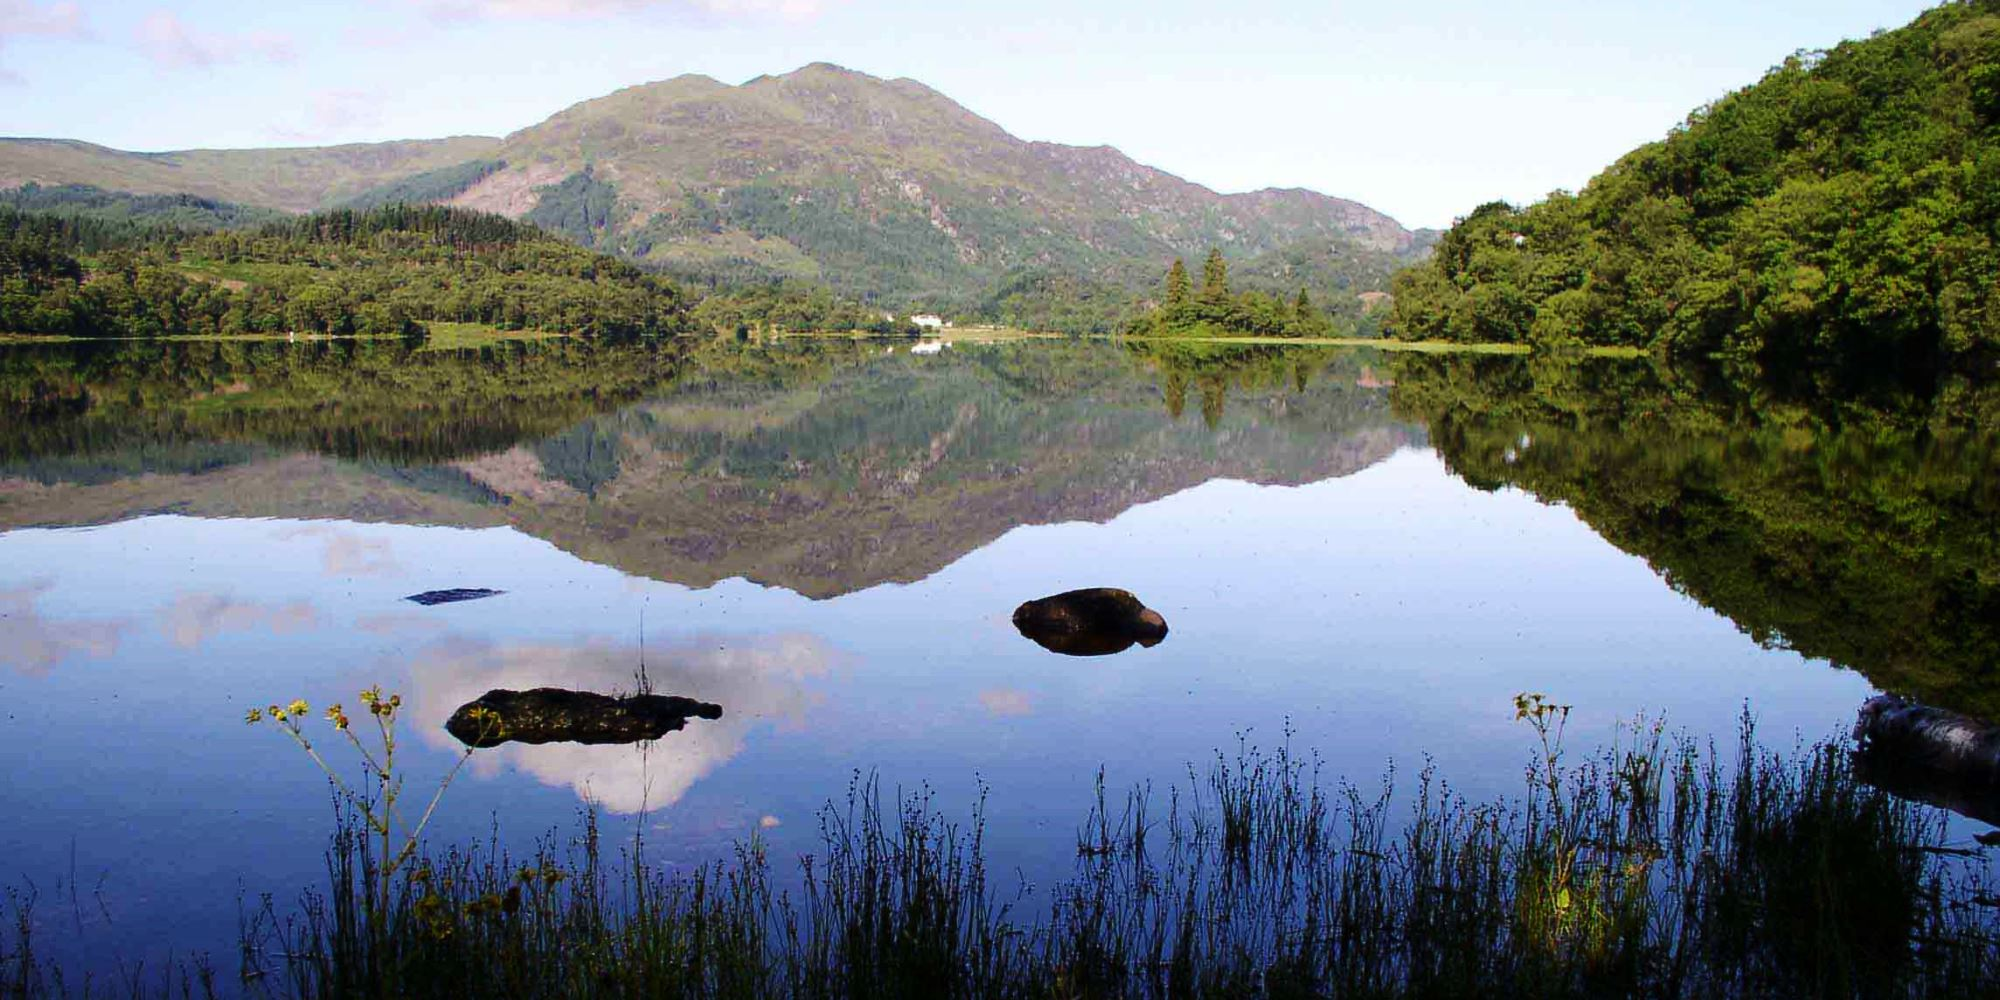 Loch Achray - Loch Lomond and Trossachs